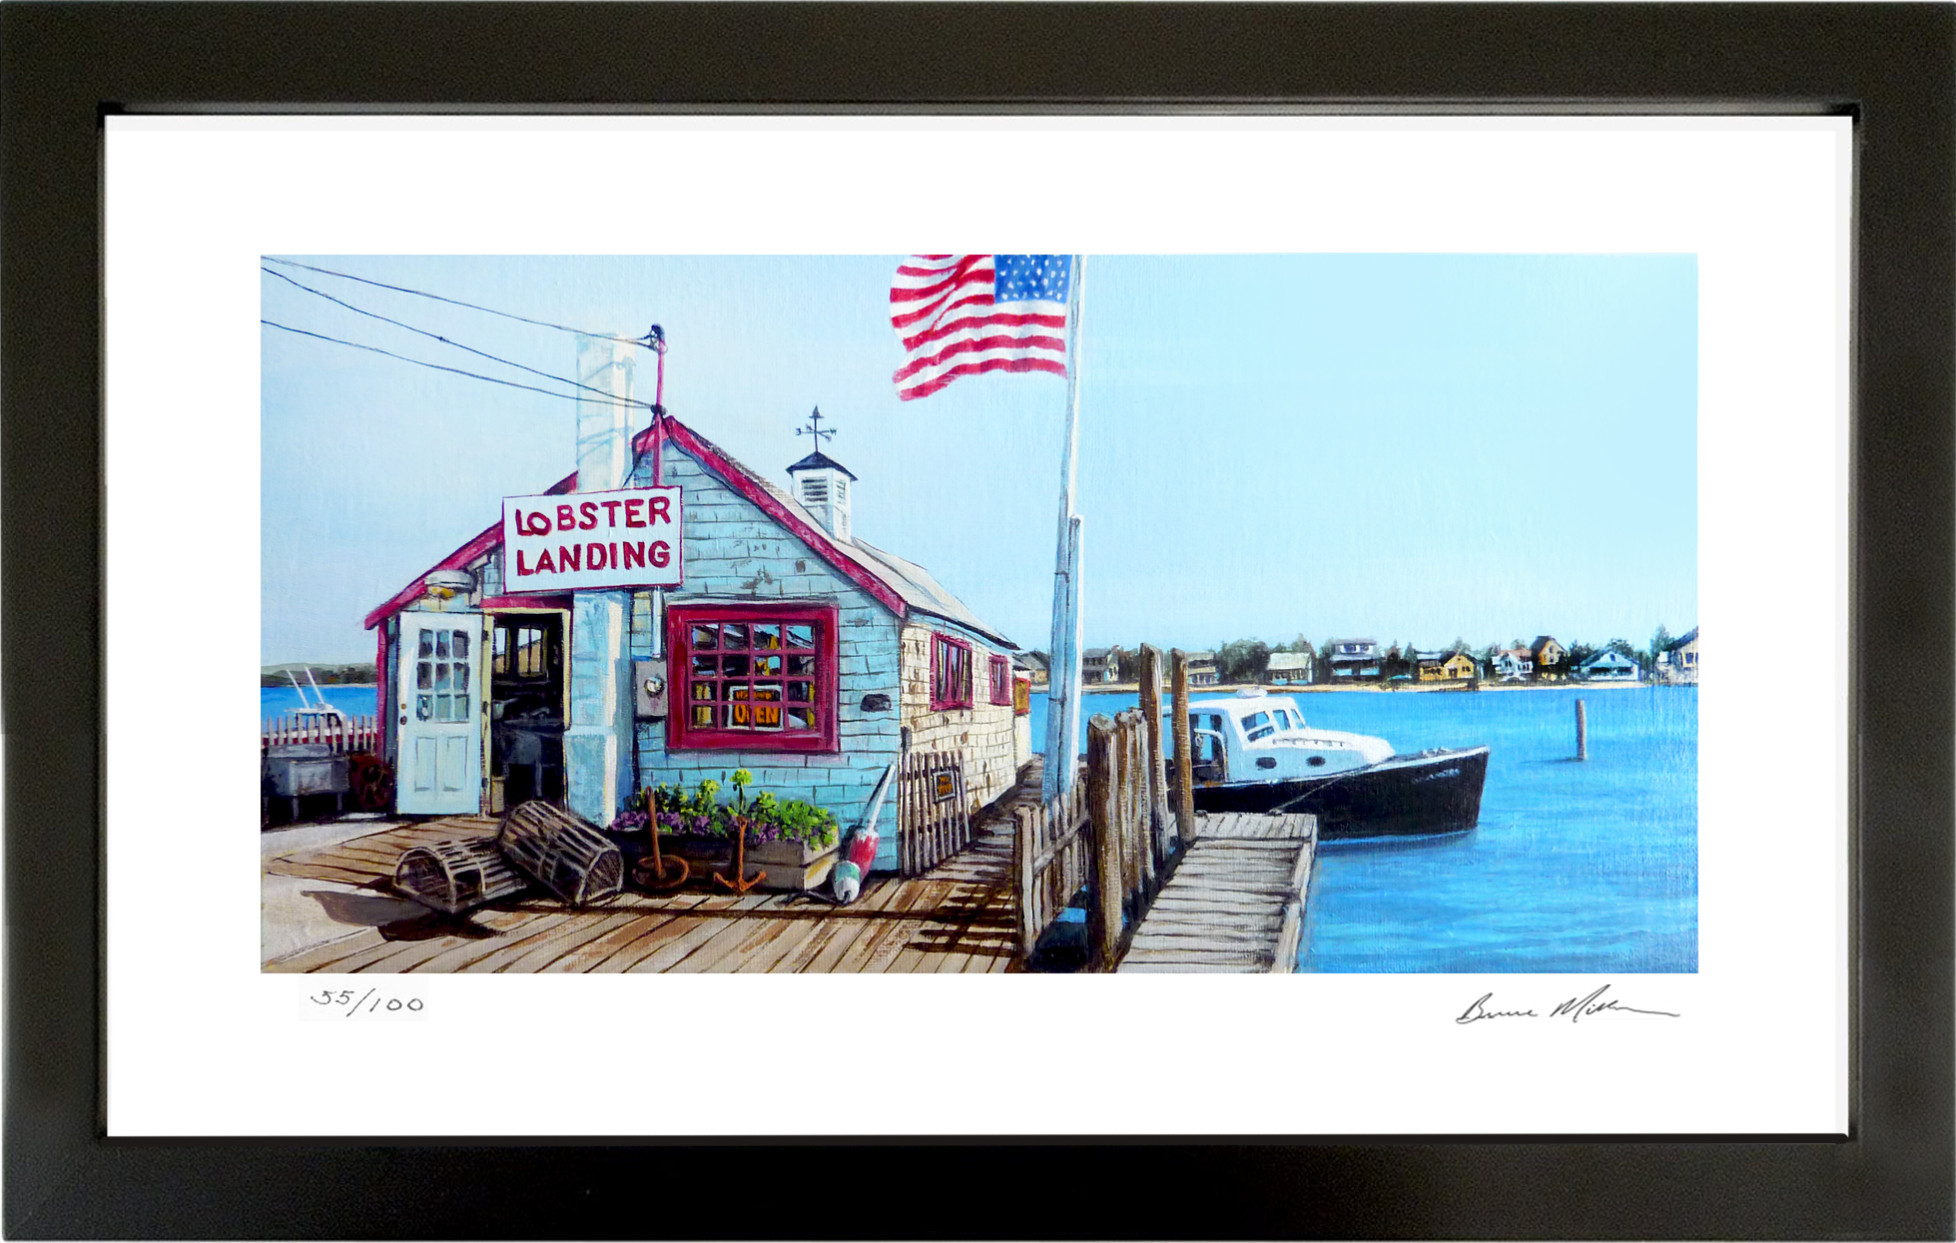 "Filled with character and charm this dockside lobster shack sits on the mainland across Clinton Harbor from Cedar Island. Signed and numbered ""Gallery Quality"" Gycleé prints of the original painting are now available. These Limited Edition prints measure 12"" x 24"" and are individually hand signed and numbered by the artist. Unframed prints are priced at $80, Framed prints (pictured above) priced at $150. Please contact the artist directly through the website for more information and purchase inquiries."